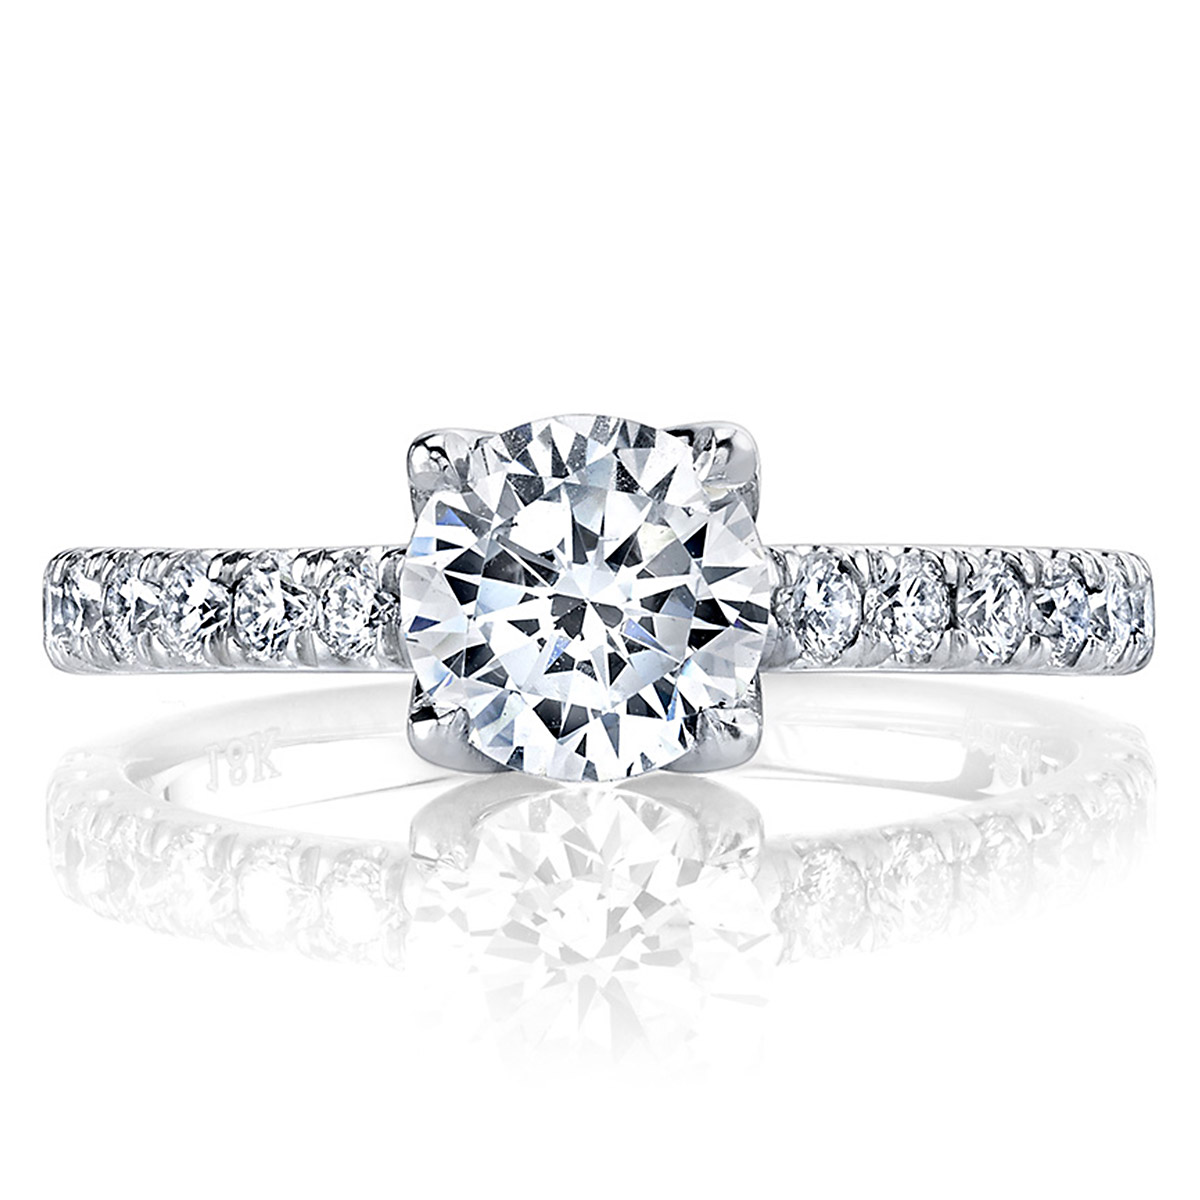 Parade New Classic 18 Karat Diamond Engagement Ring R3812 Alternative View 2